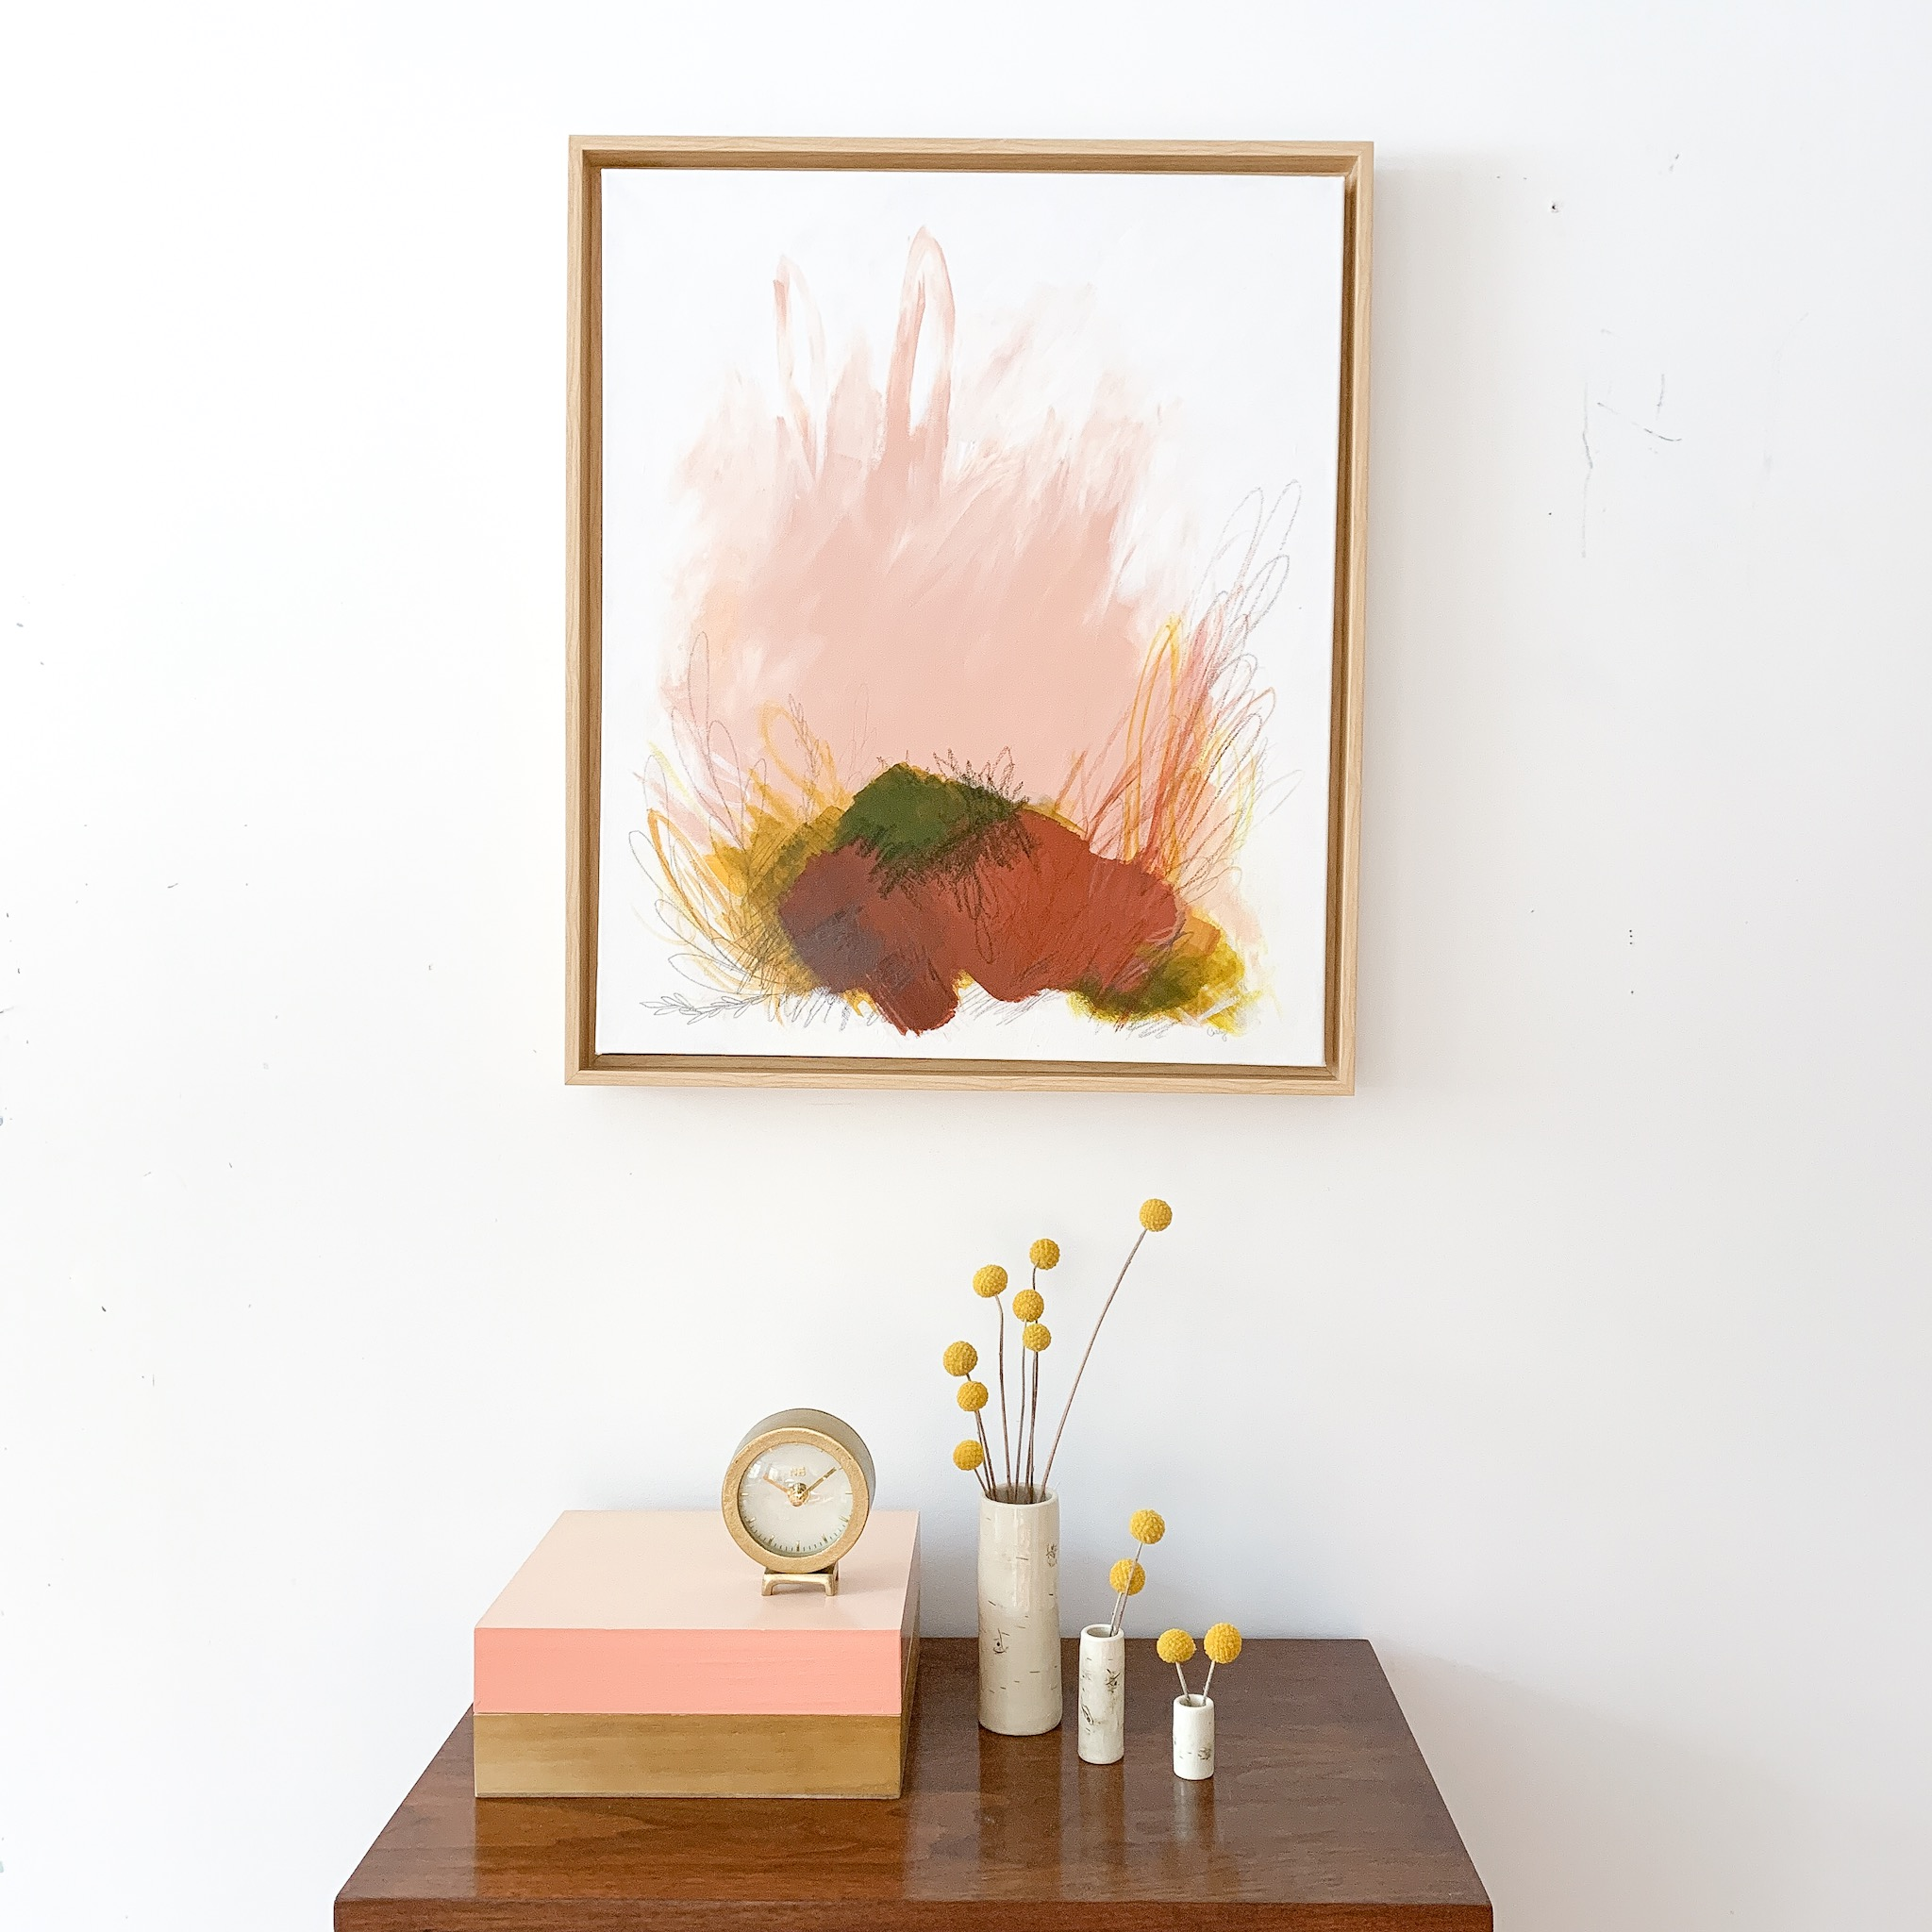 boho_style_painting_in_blush_tones_by_megan_carty.JPG